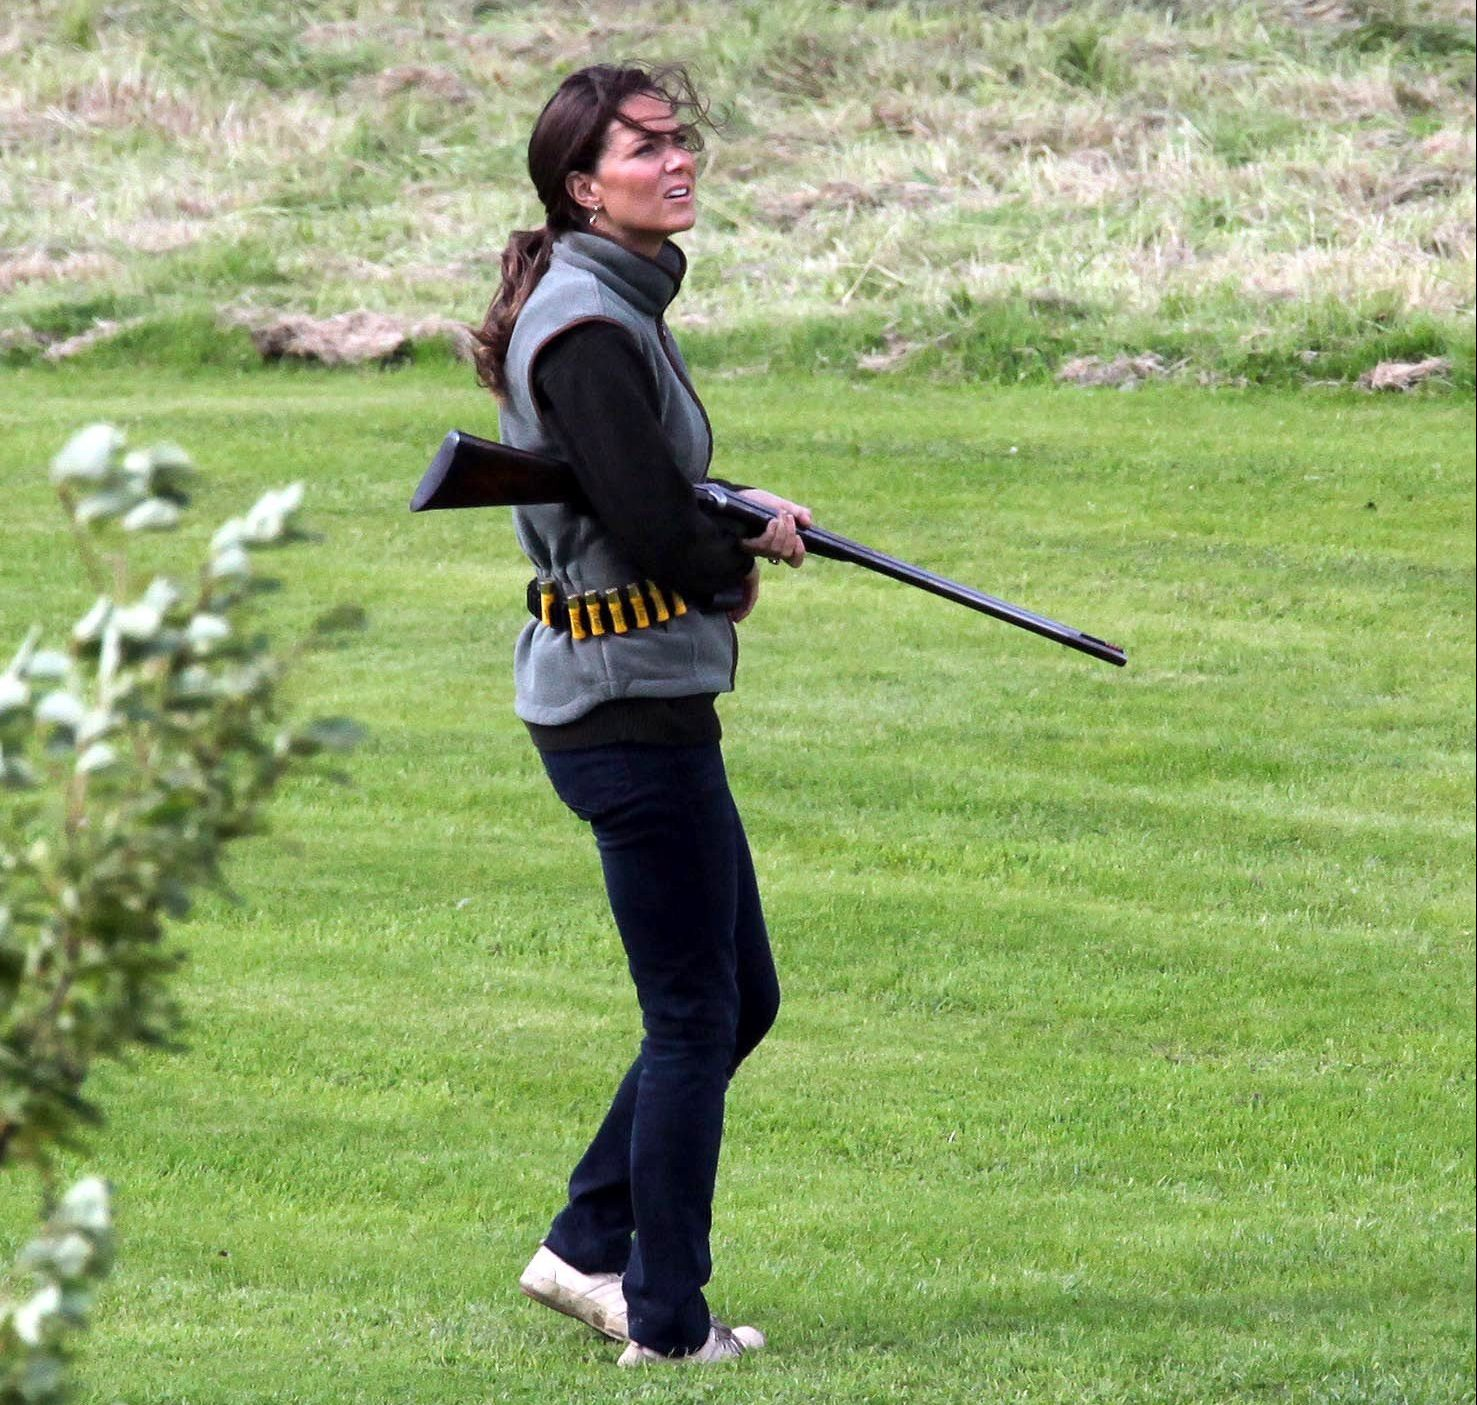 Mandatory Credit: Photo by Ikon Pictures/REX/Shutterstock (1004428m) Kate Middleton on a grouse shoot Prince William and Kate Middleton, Scotland, Britain - Aug 2009 Prince William and Kate Middleton on the weekend of the 12th anniversary of Princess Diana's death